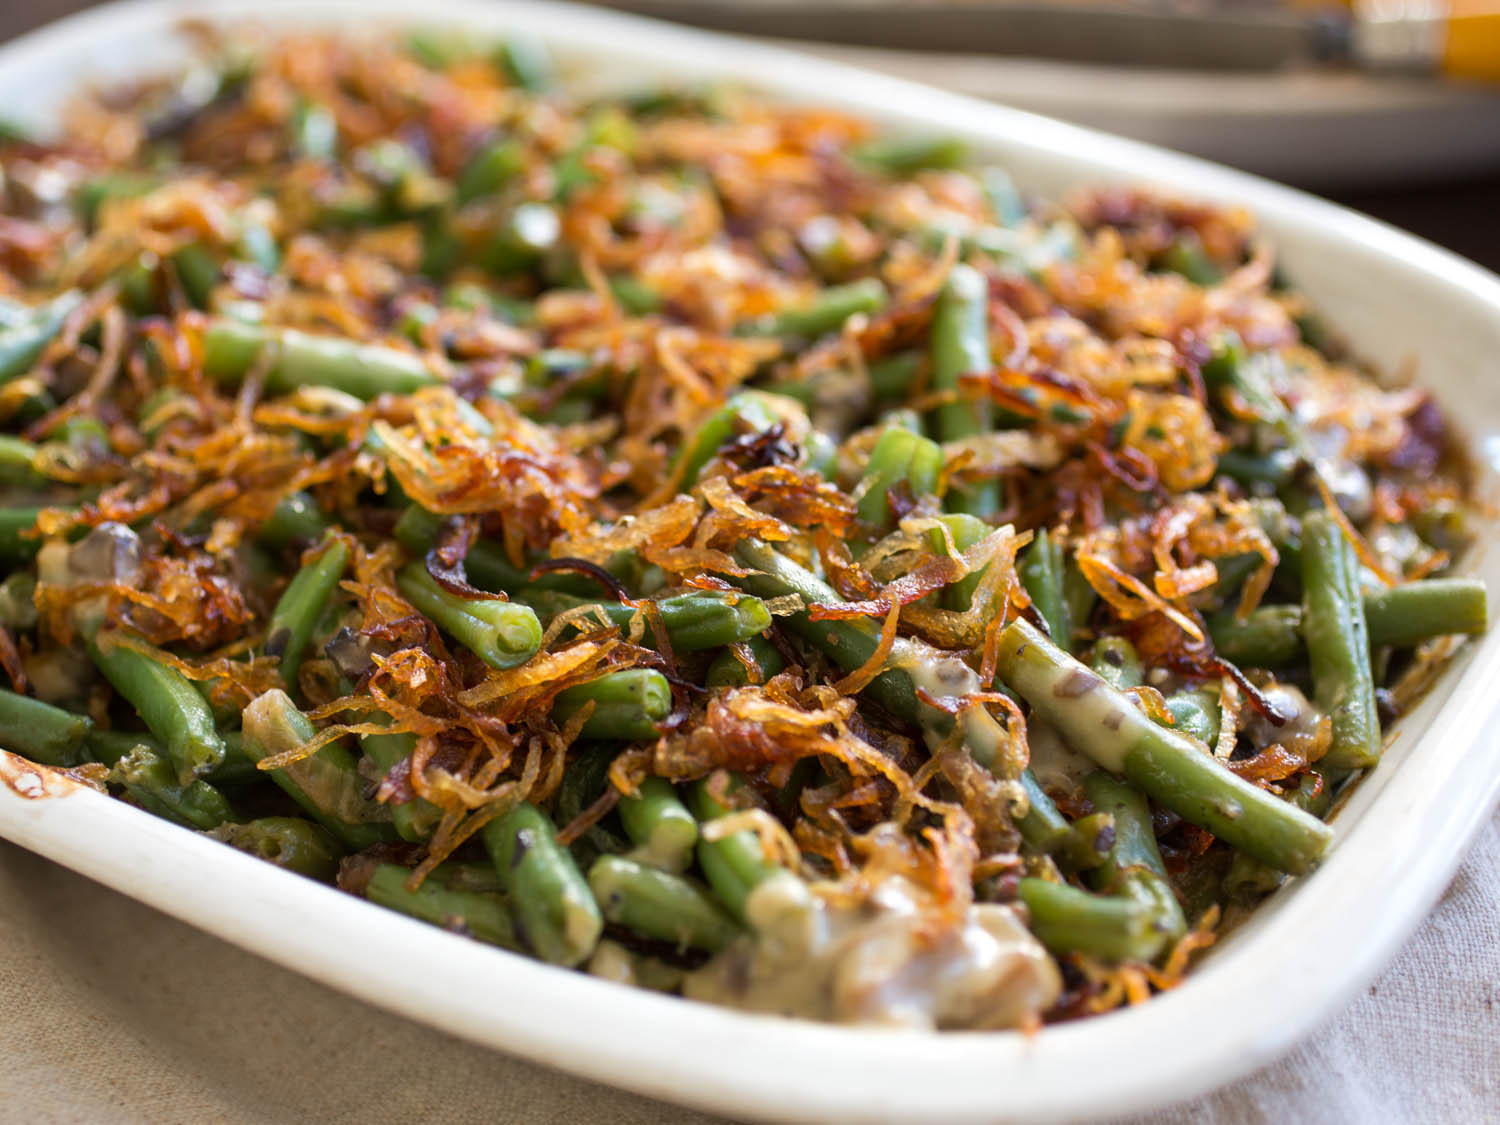 Green Bean Recipes For Thanksgiving  The Ultimate Homemade Green Bean Casserole Recipe